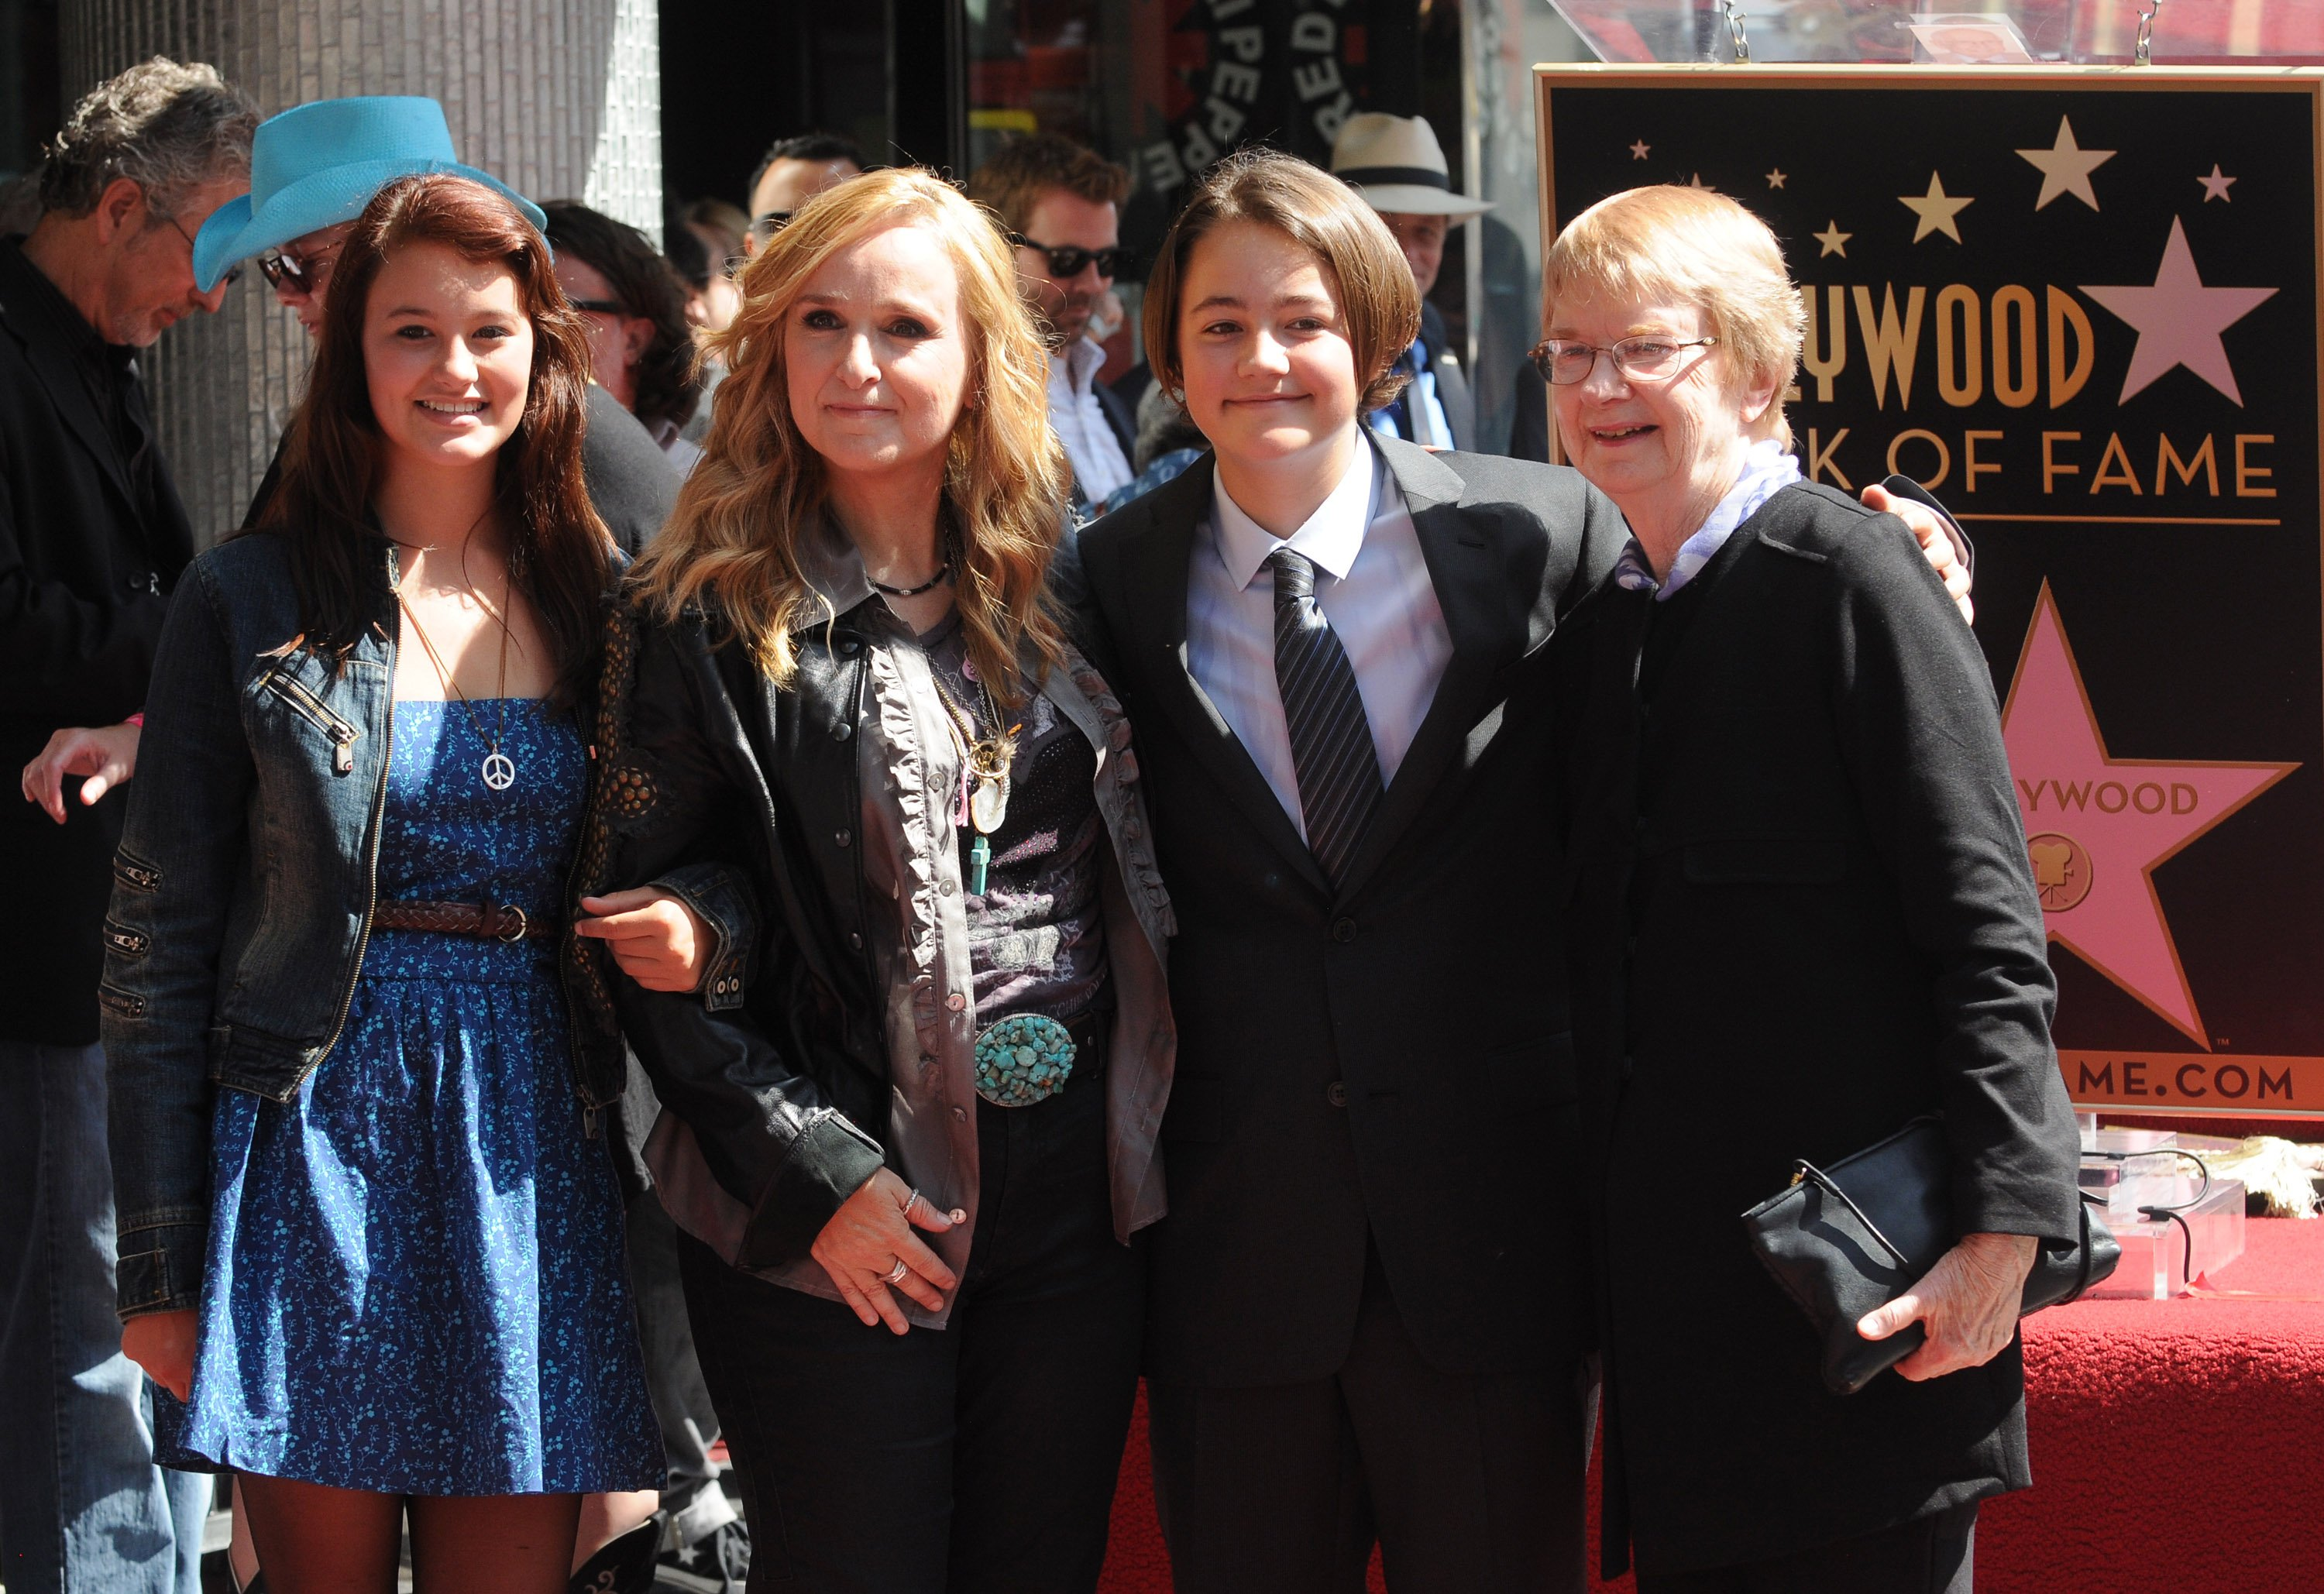 Bailey Cypher, Melissa Etheridge, Beckett Cypher and Elizabeth Williamson attend Melissa Etheridge's Hollywood Walk of Fame Induction Ceremony on September 27, 2011 in Hollywood, California. | Photo: GettyImages